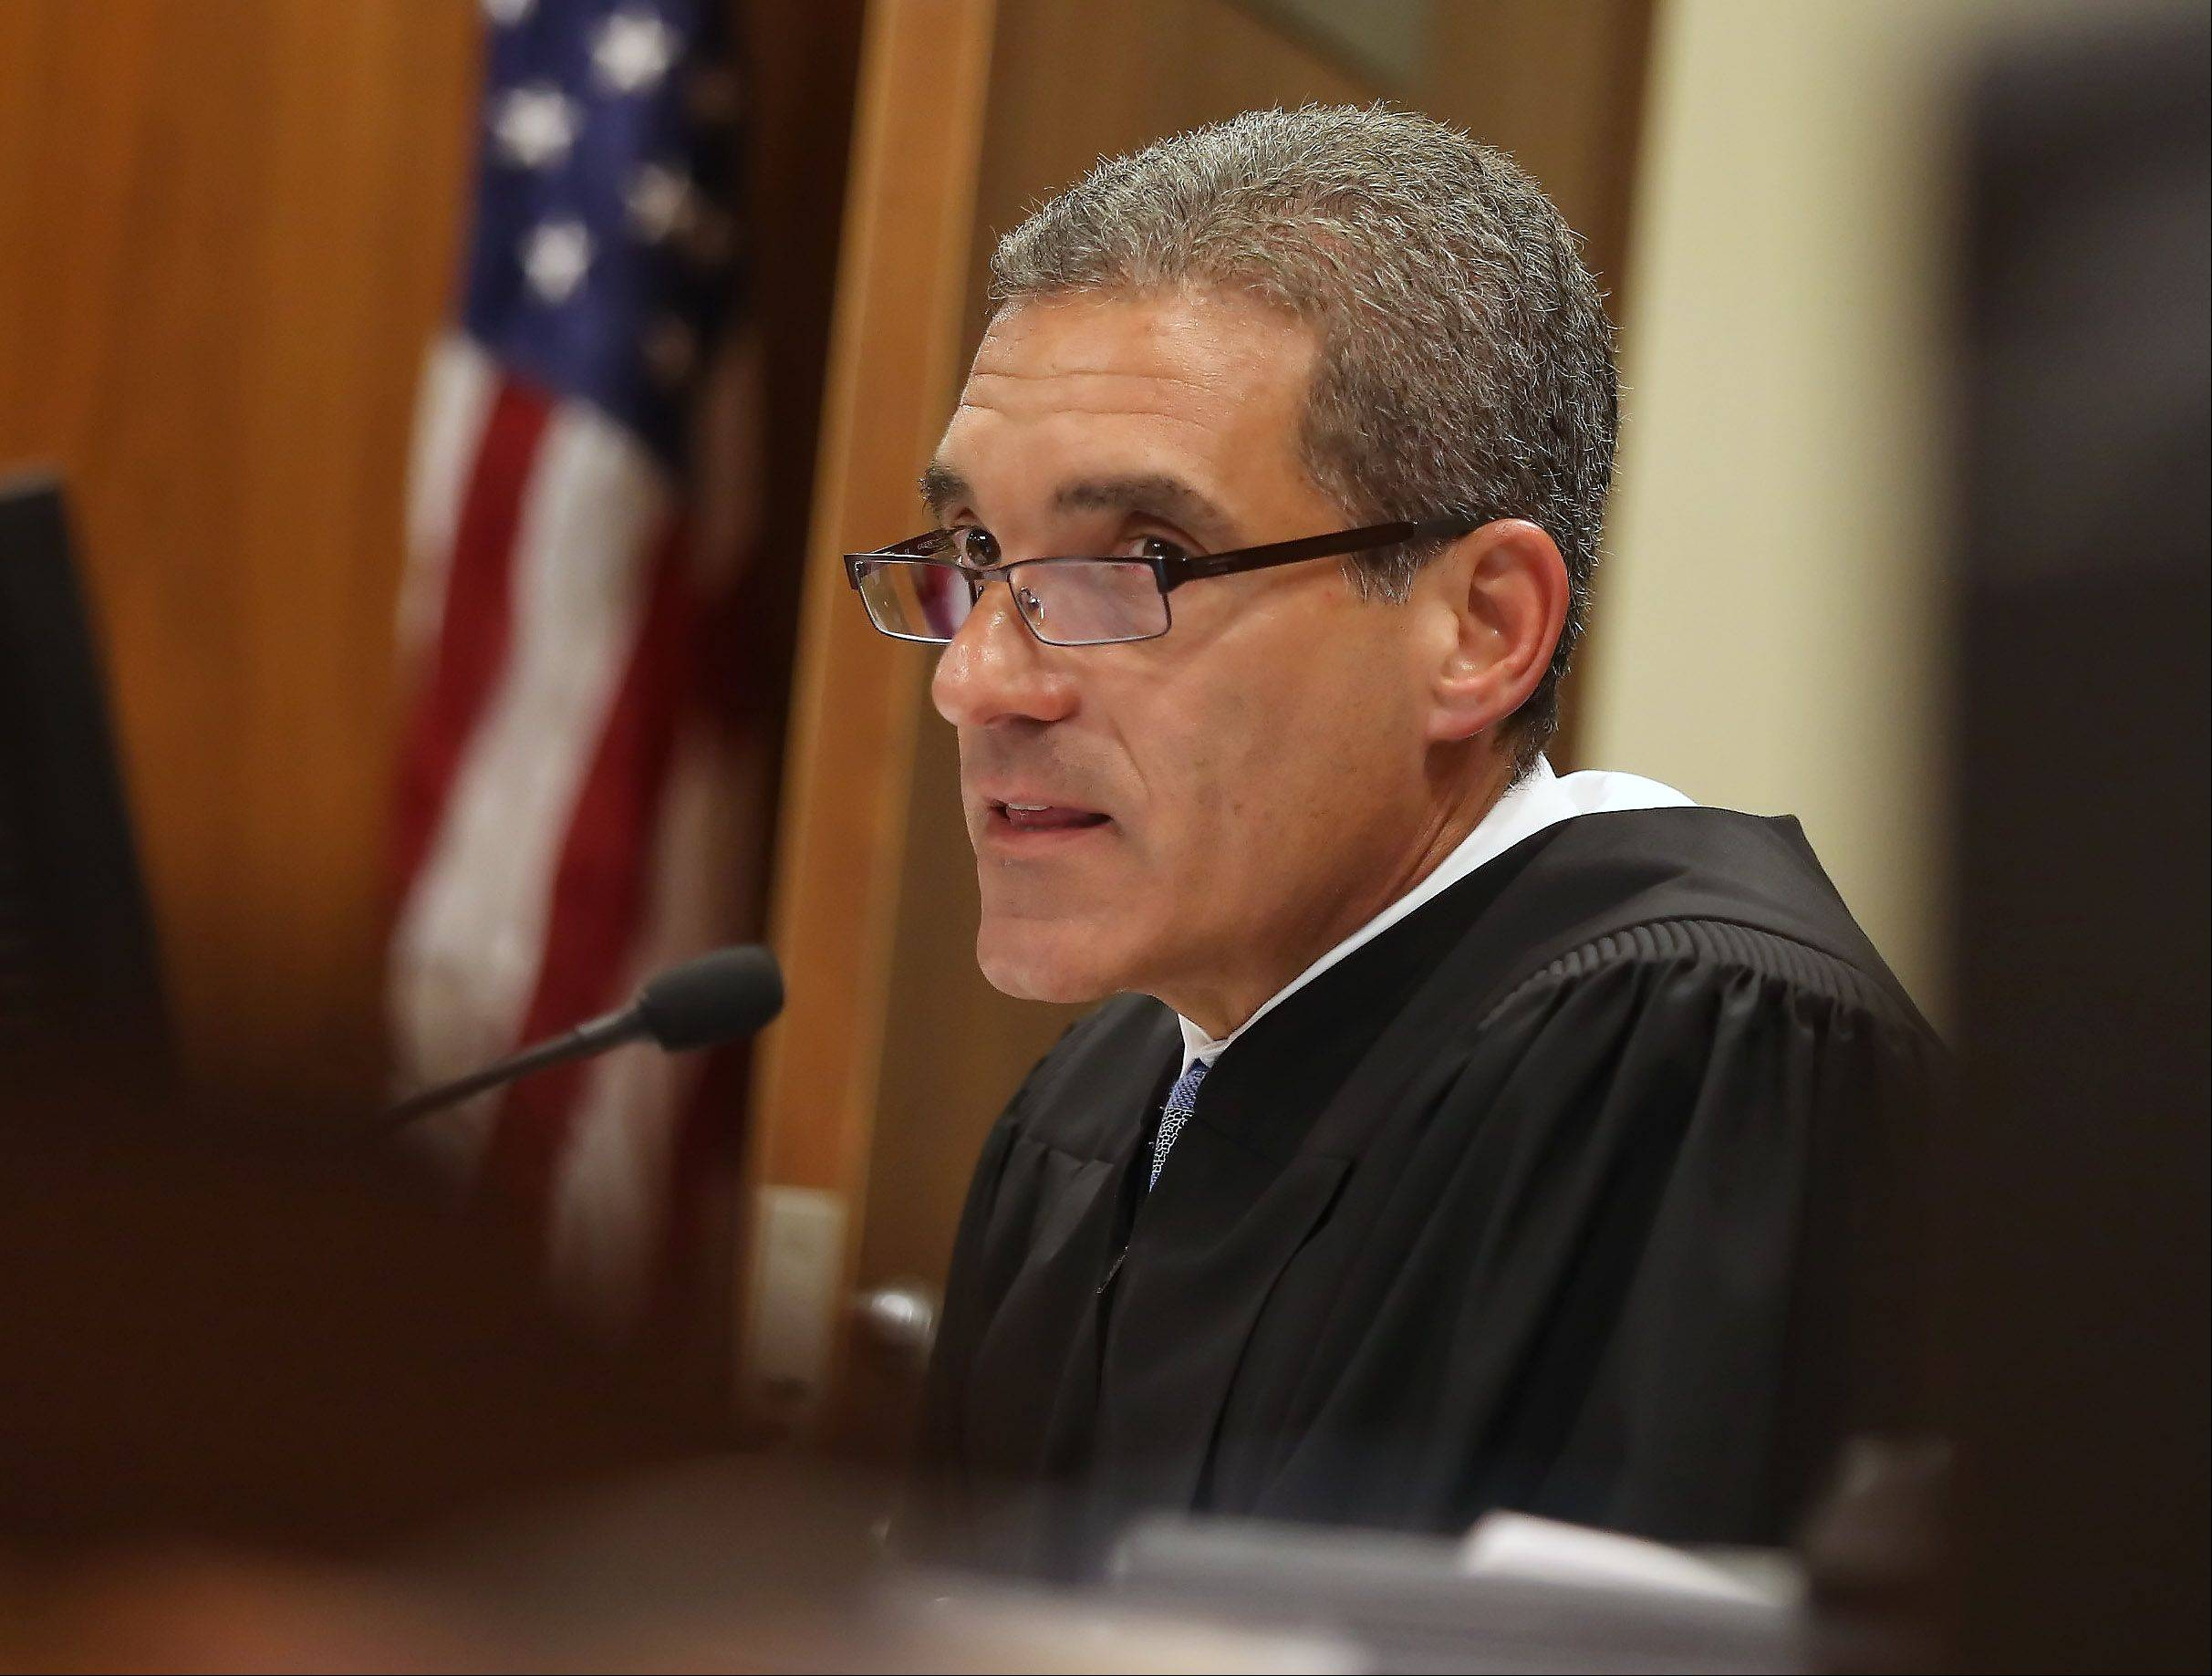 Lake County Judge Mark Levitt announces the verdict in Ronald Stolberg's sentencing hearing Thursday. He was sentenced to eight years in prison for involuntary manslaughter in the death of his wife, Rachel.